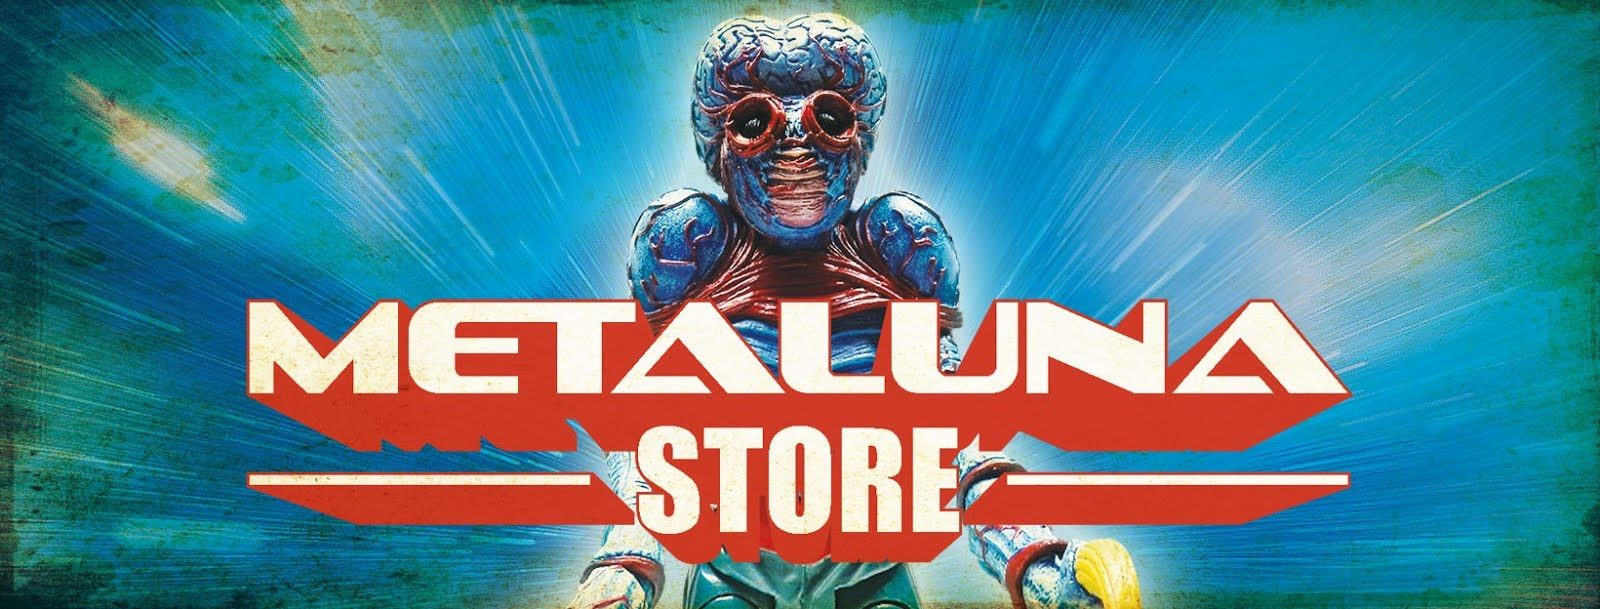 Metaluna Store is back !